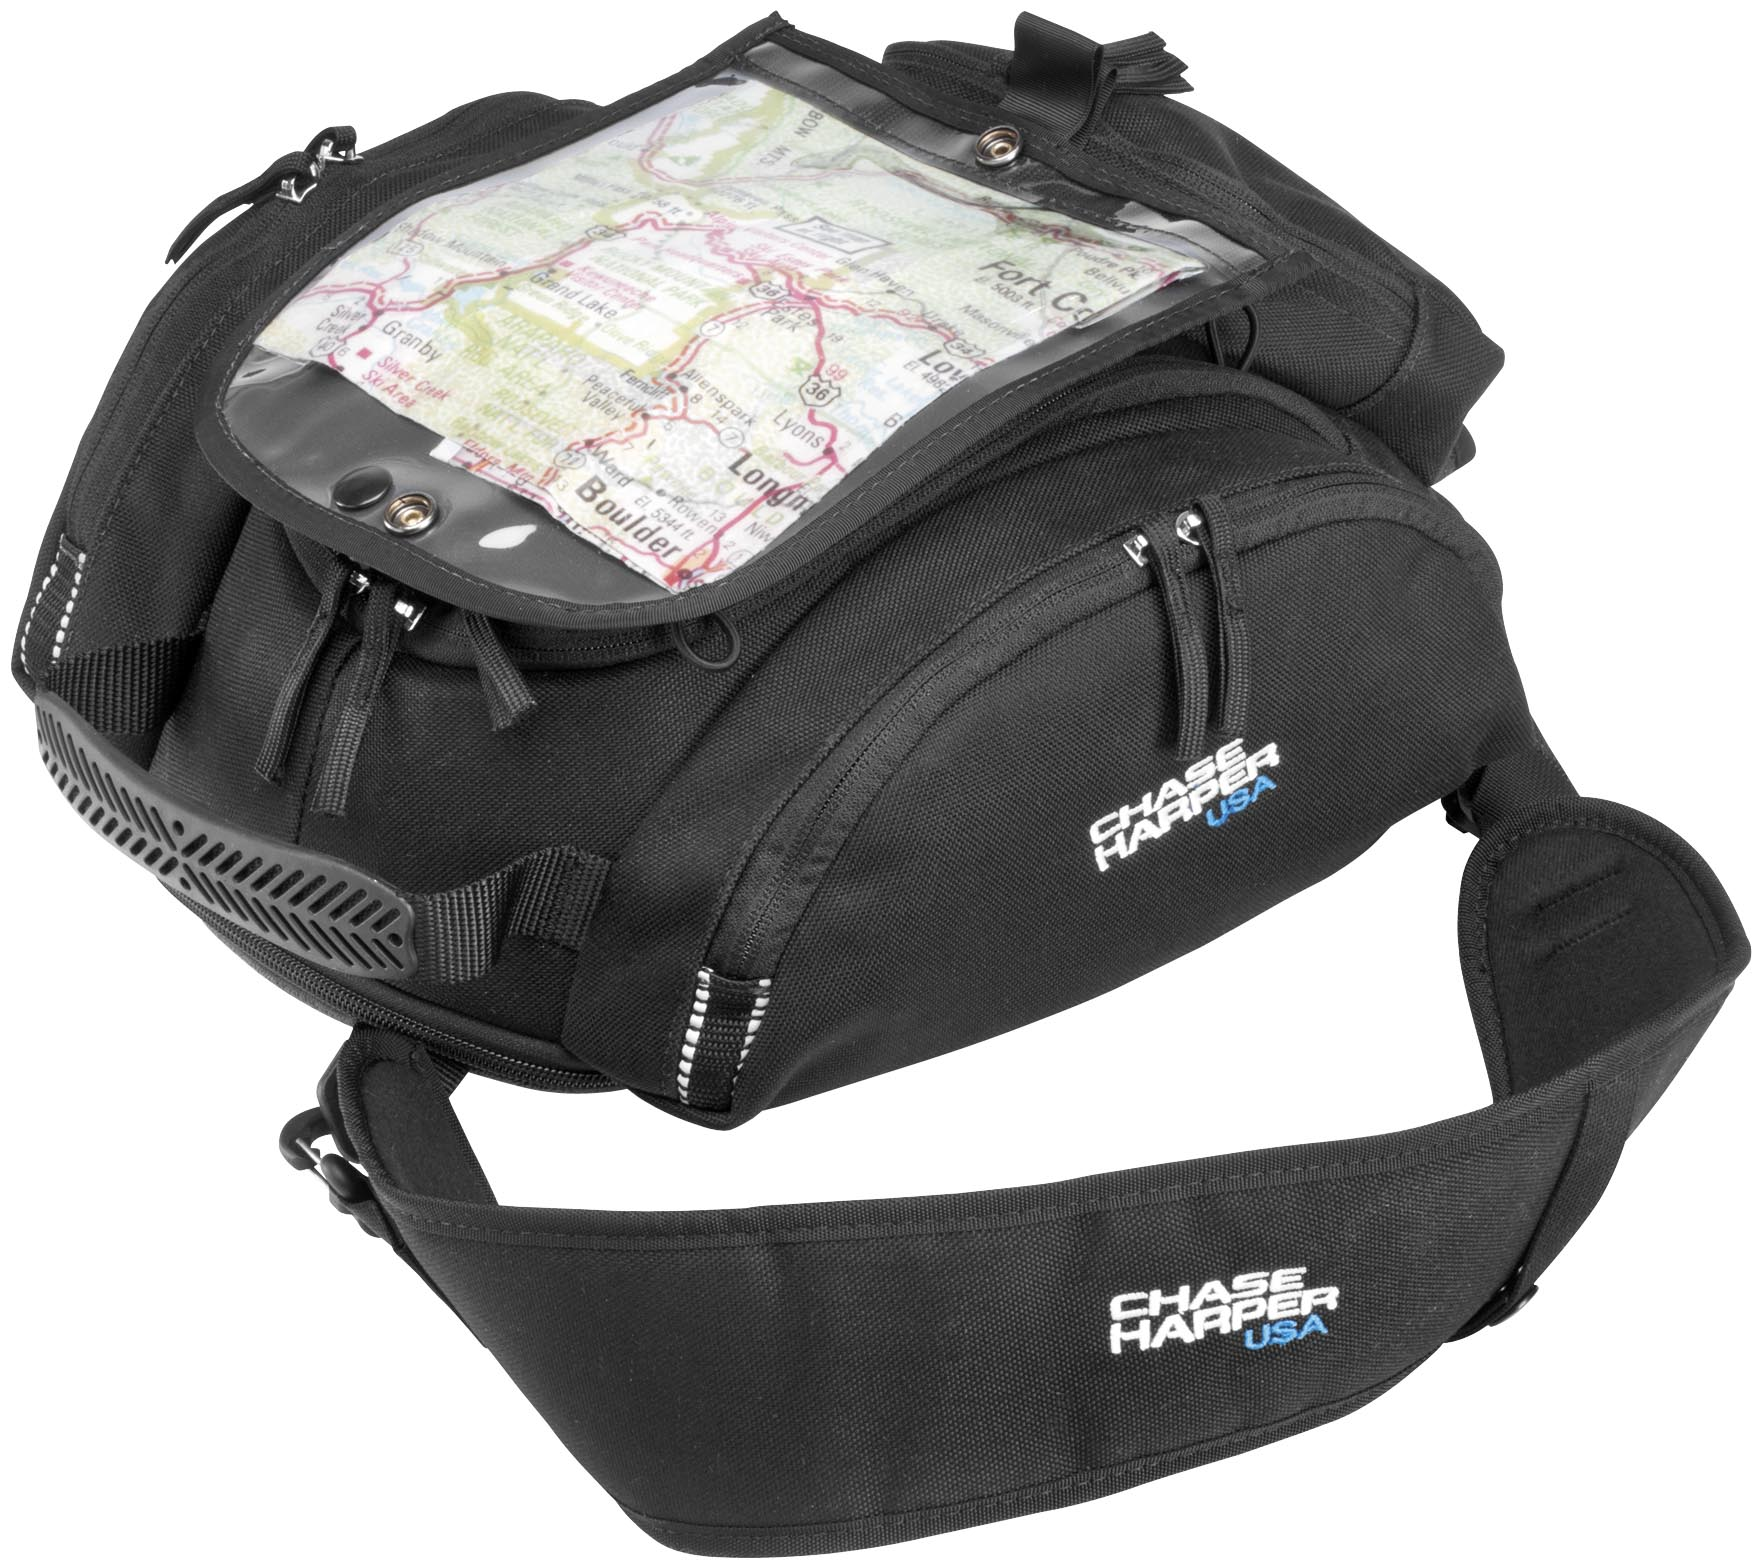 Chase Harper 6XM Tank Bag (Expandable Magnetic Mount)